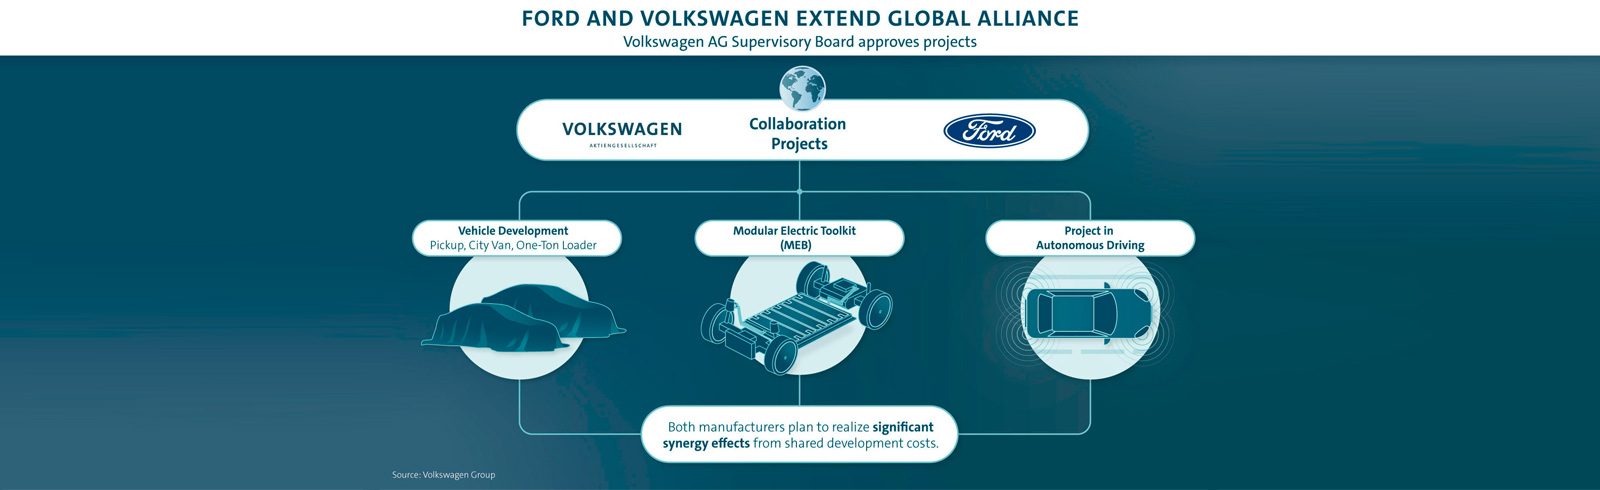 Volkswagen-Ford global alliance gets into action, begins with a Ford EV for Europe based on the MEB platform